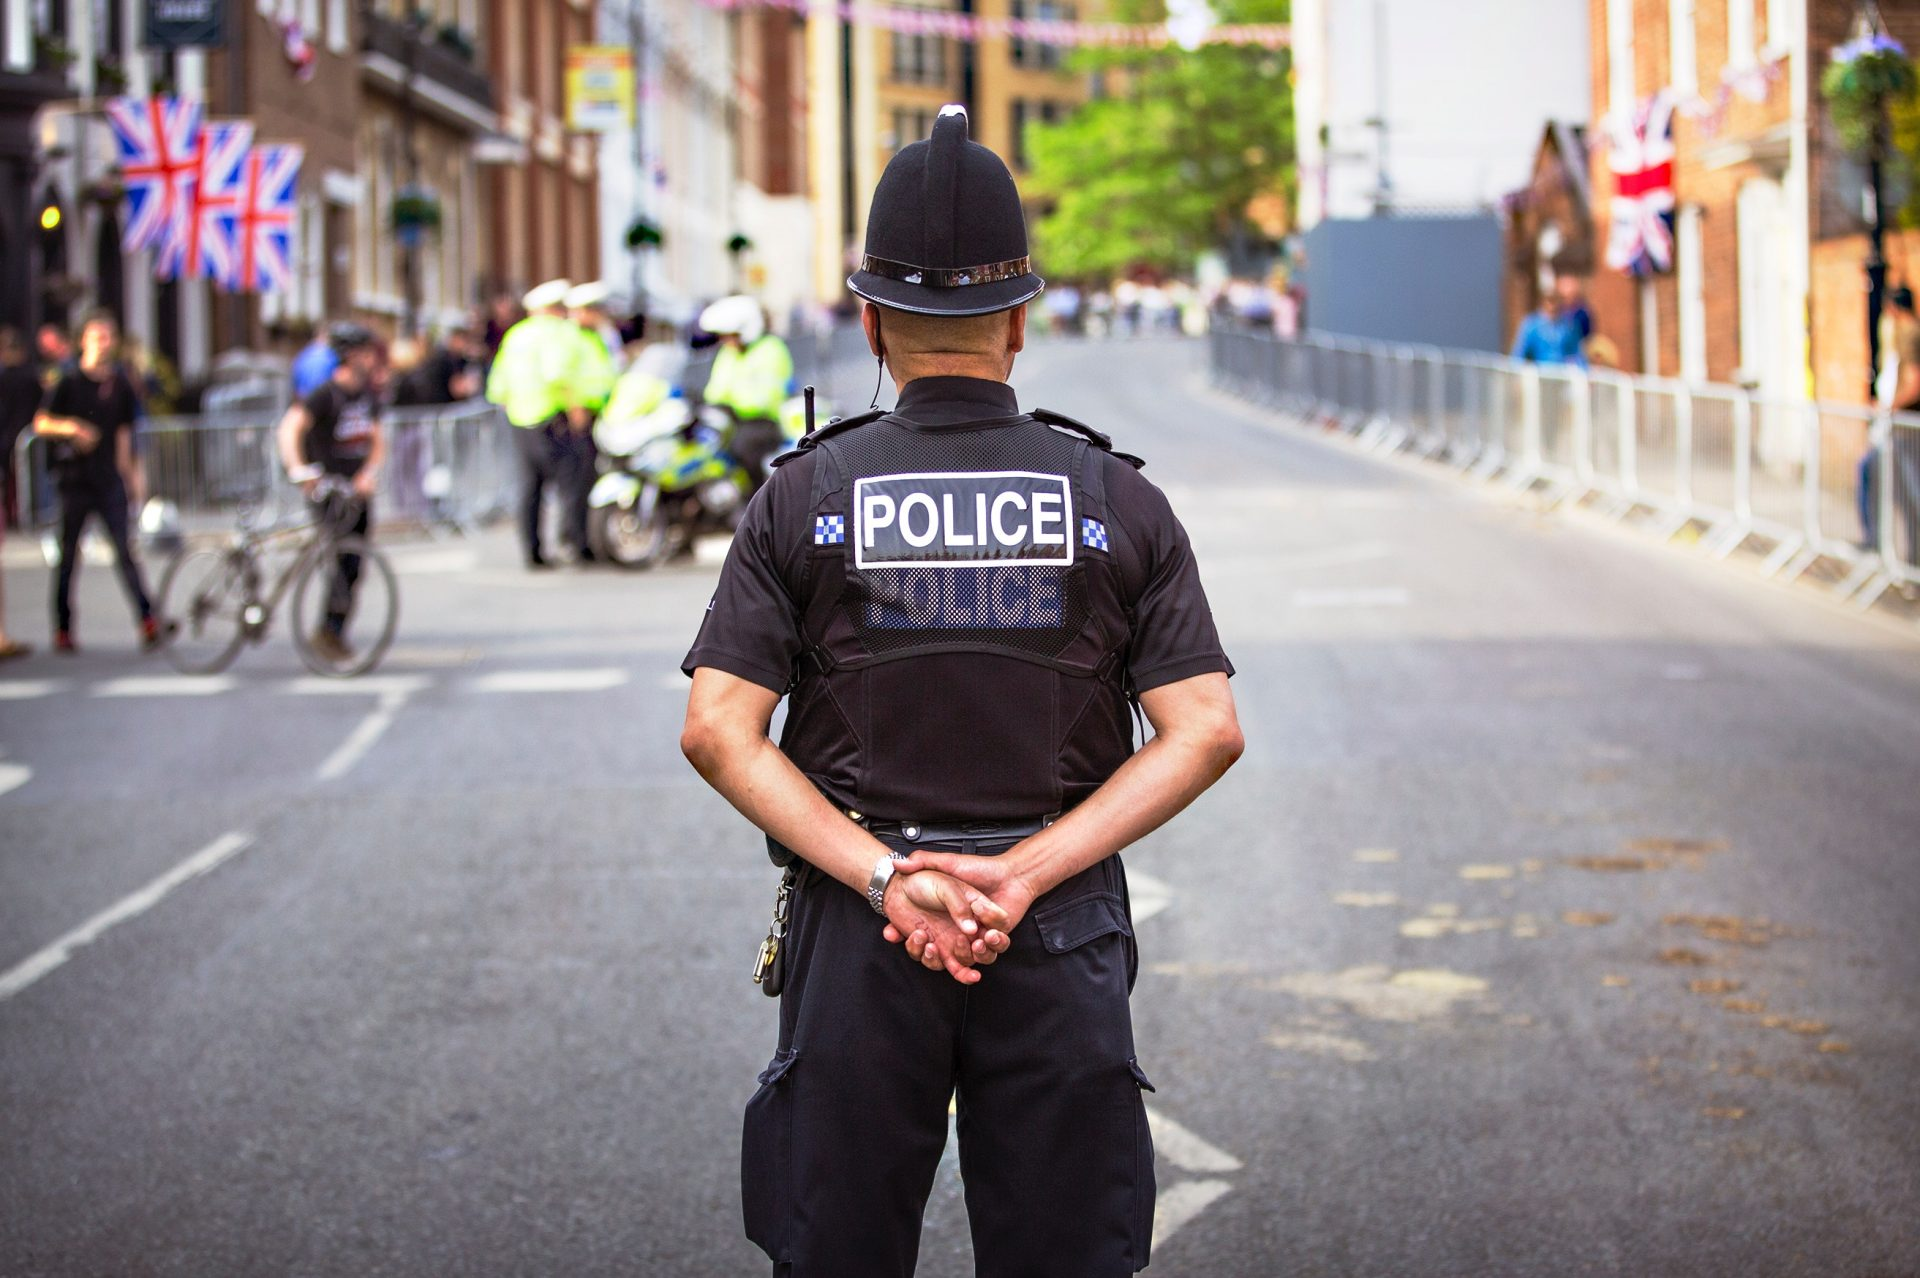 A UK Policeman standing in a street